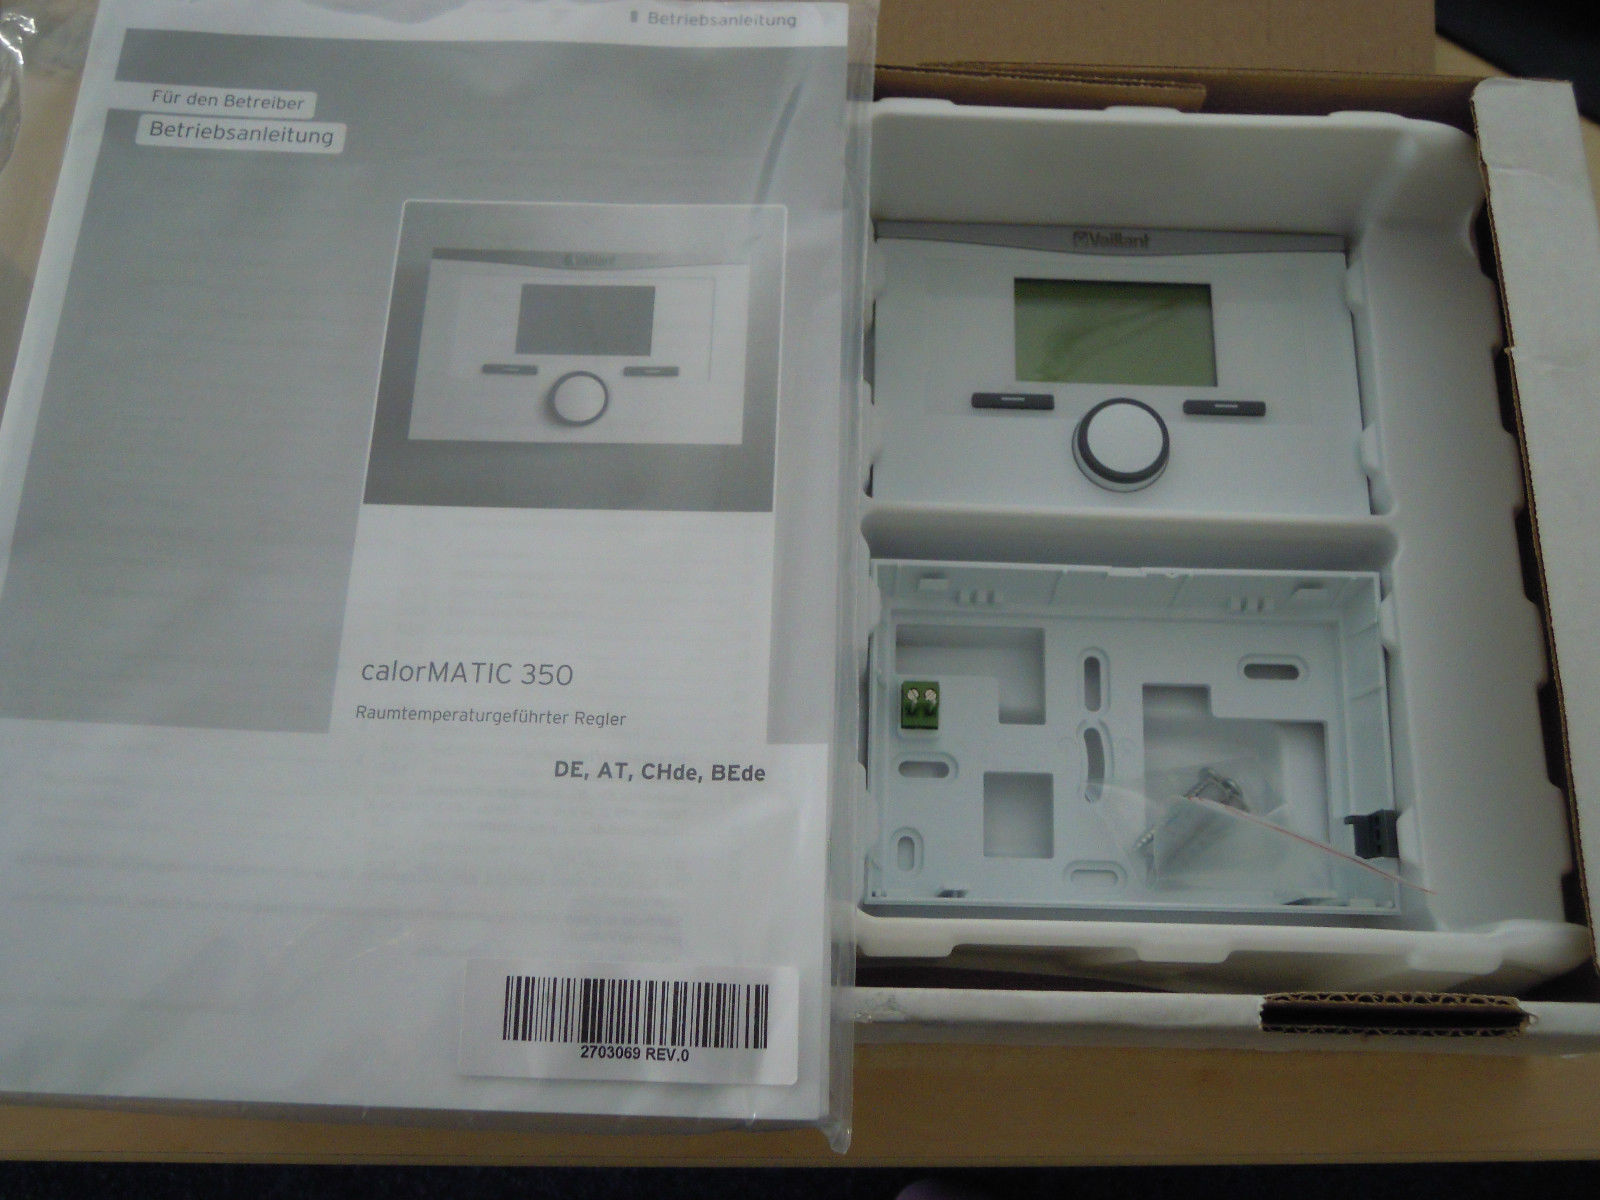 vaillant calormatic 350 raumregler raumthermostat vrt 350 vrt350 neu ovp ebay. Black Bedroom Furniture Sets. Home Design Ideas